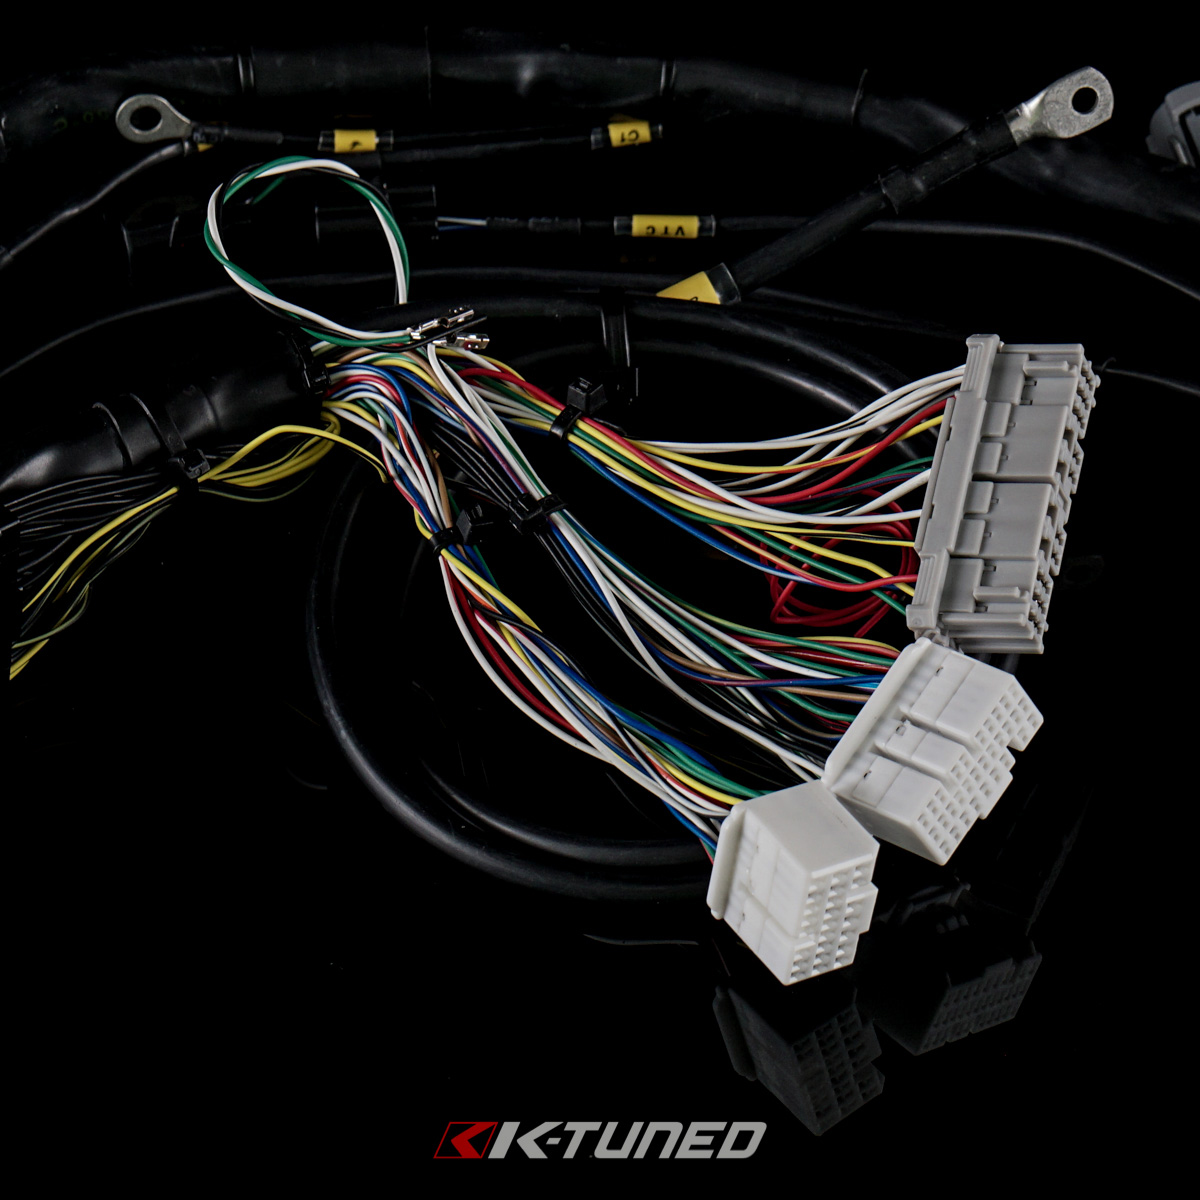 KTH 204 ENG_020 k series tucked engine harness wireworx k series harness at suagrazia.org